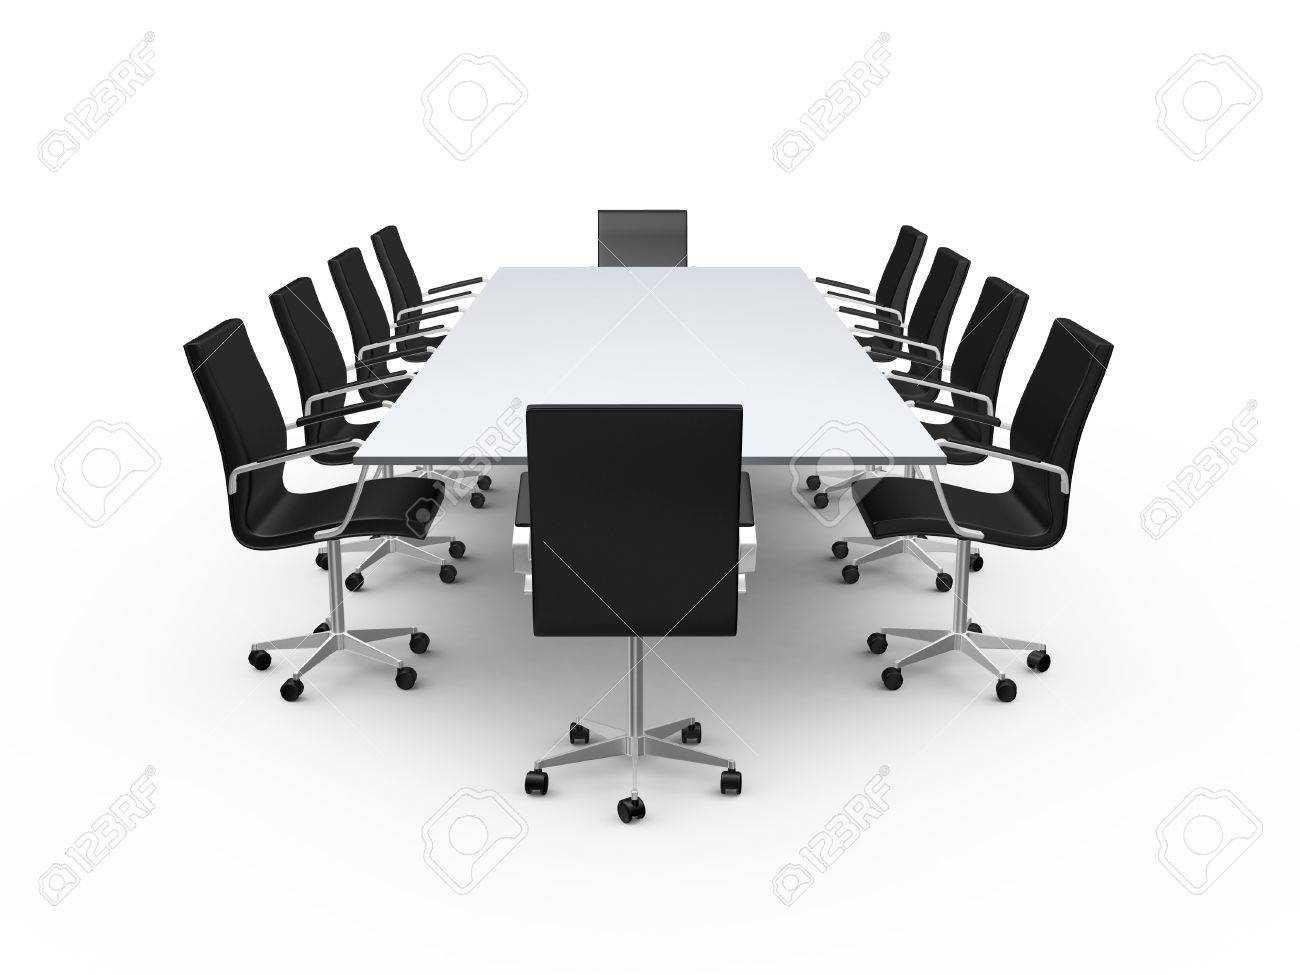 Conference table and black office chairs in meeting room, isolated..